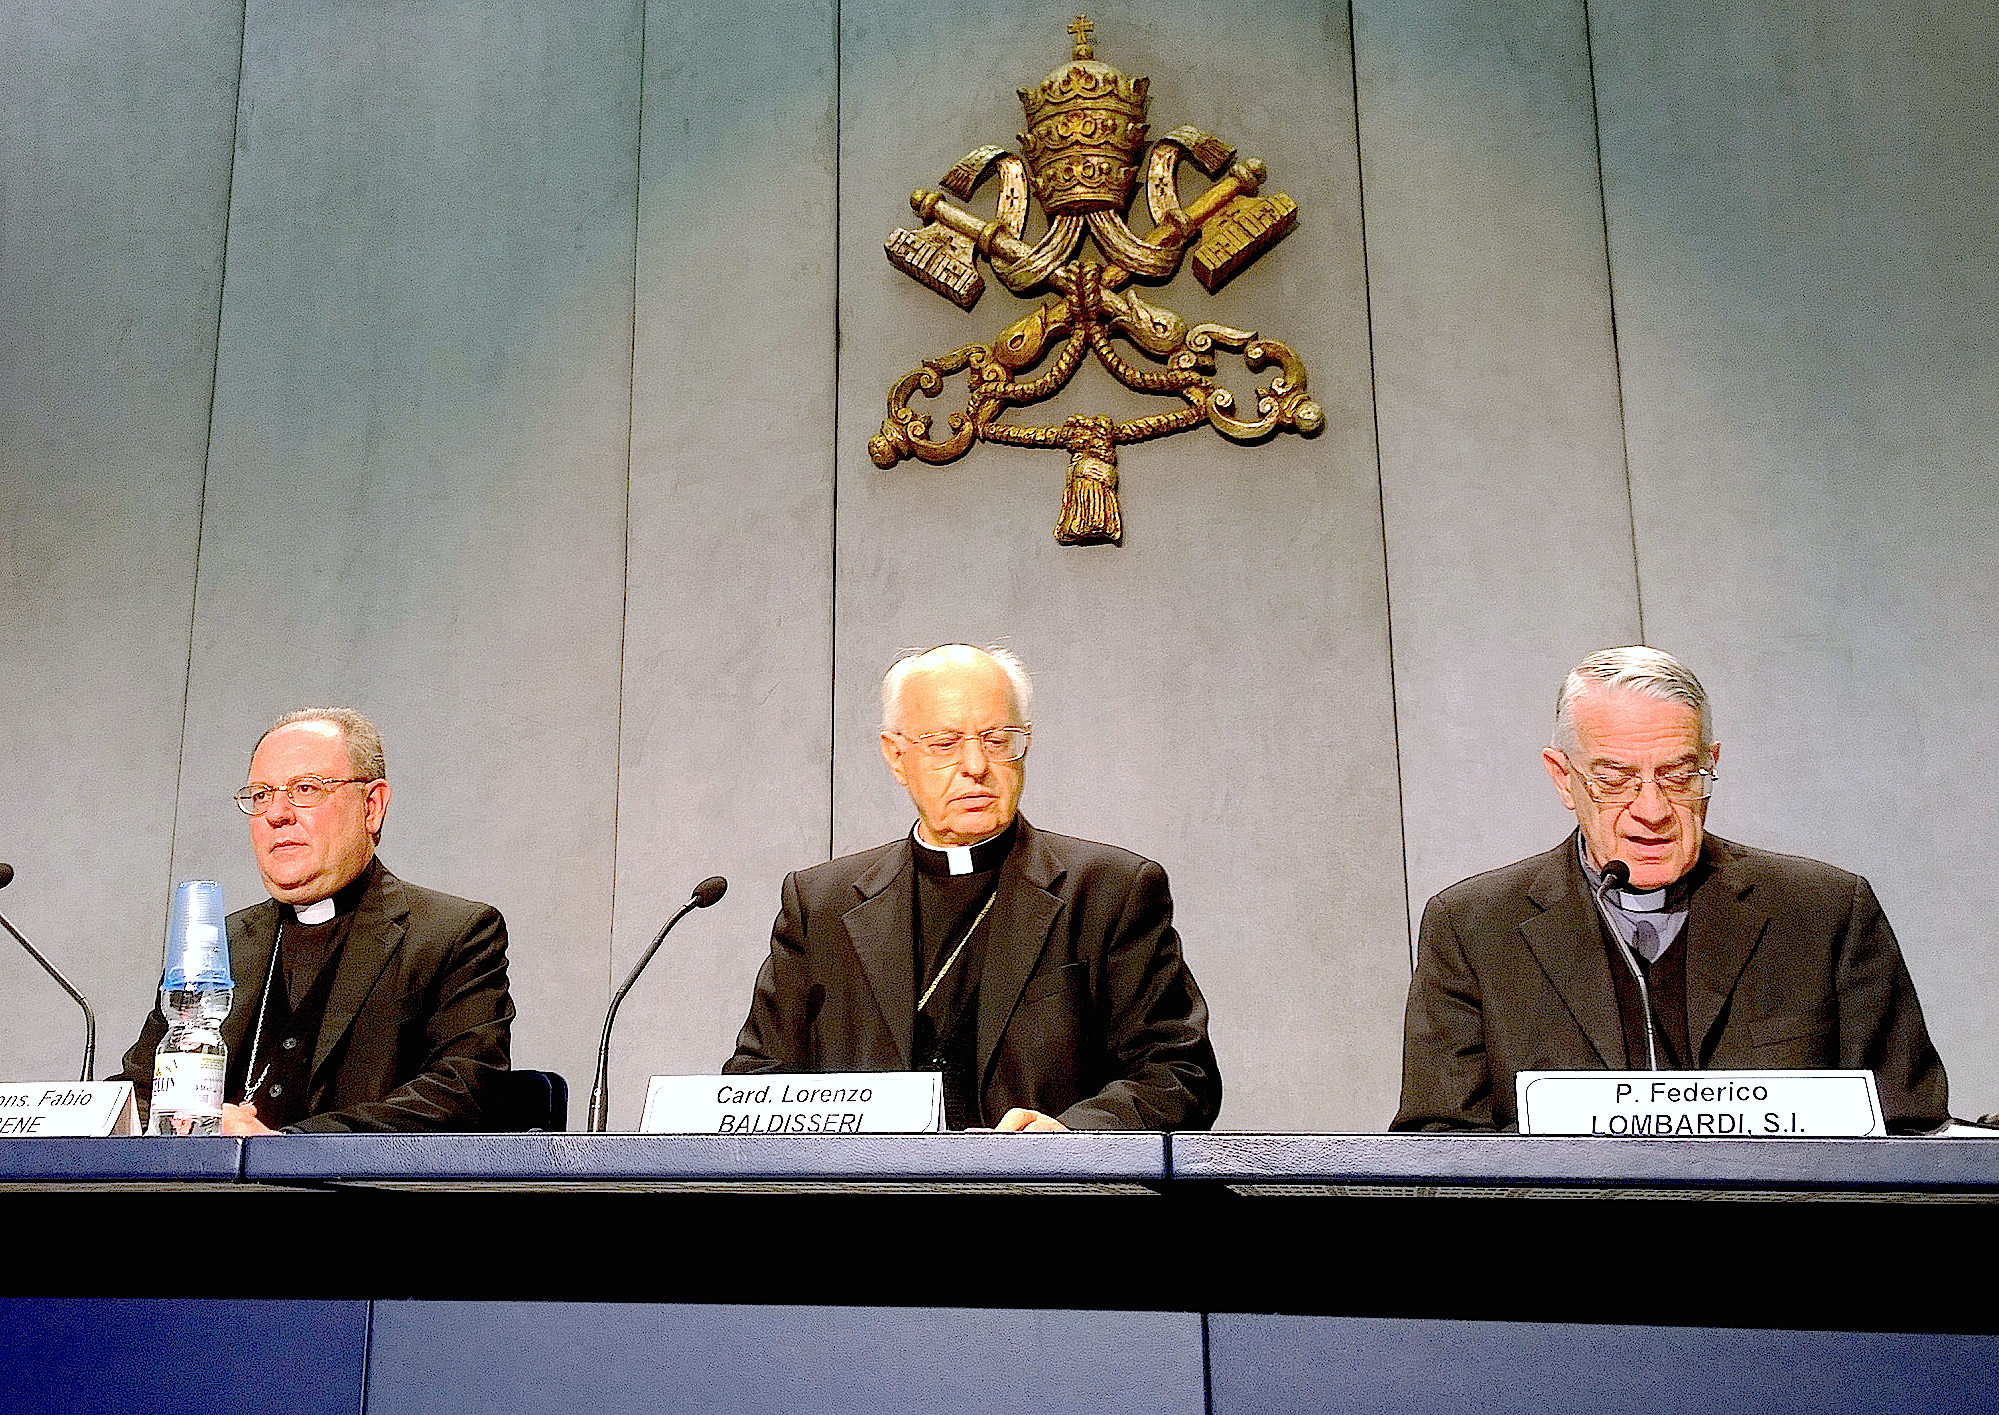 Cardinal Baldisseri in the pressroom during the presentation of the Ordinari Synod of the Family. 2 October 2015